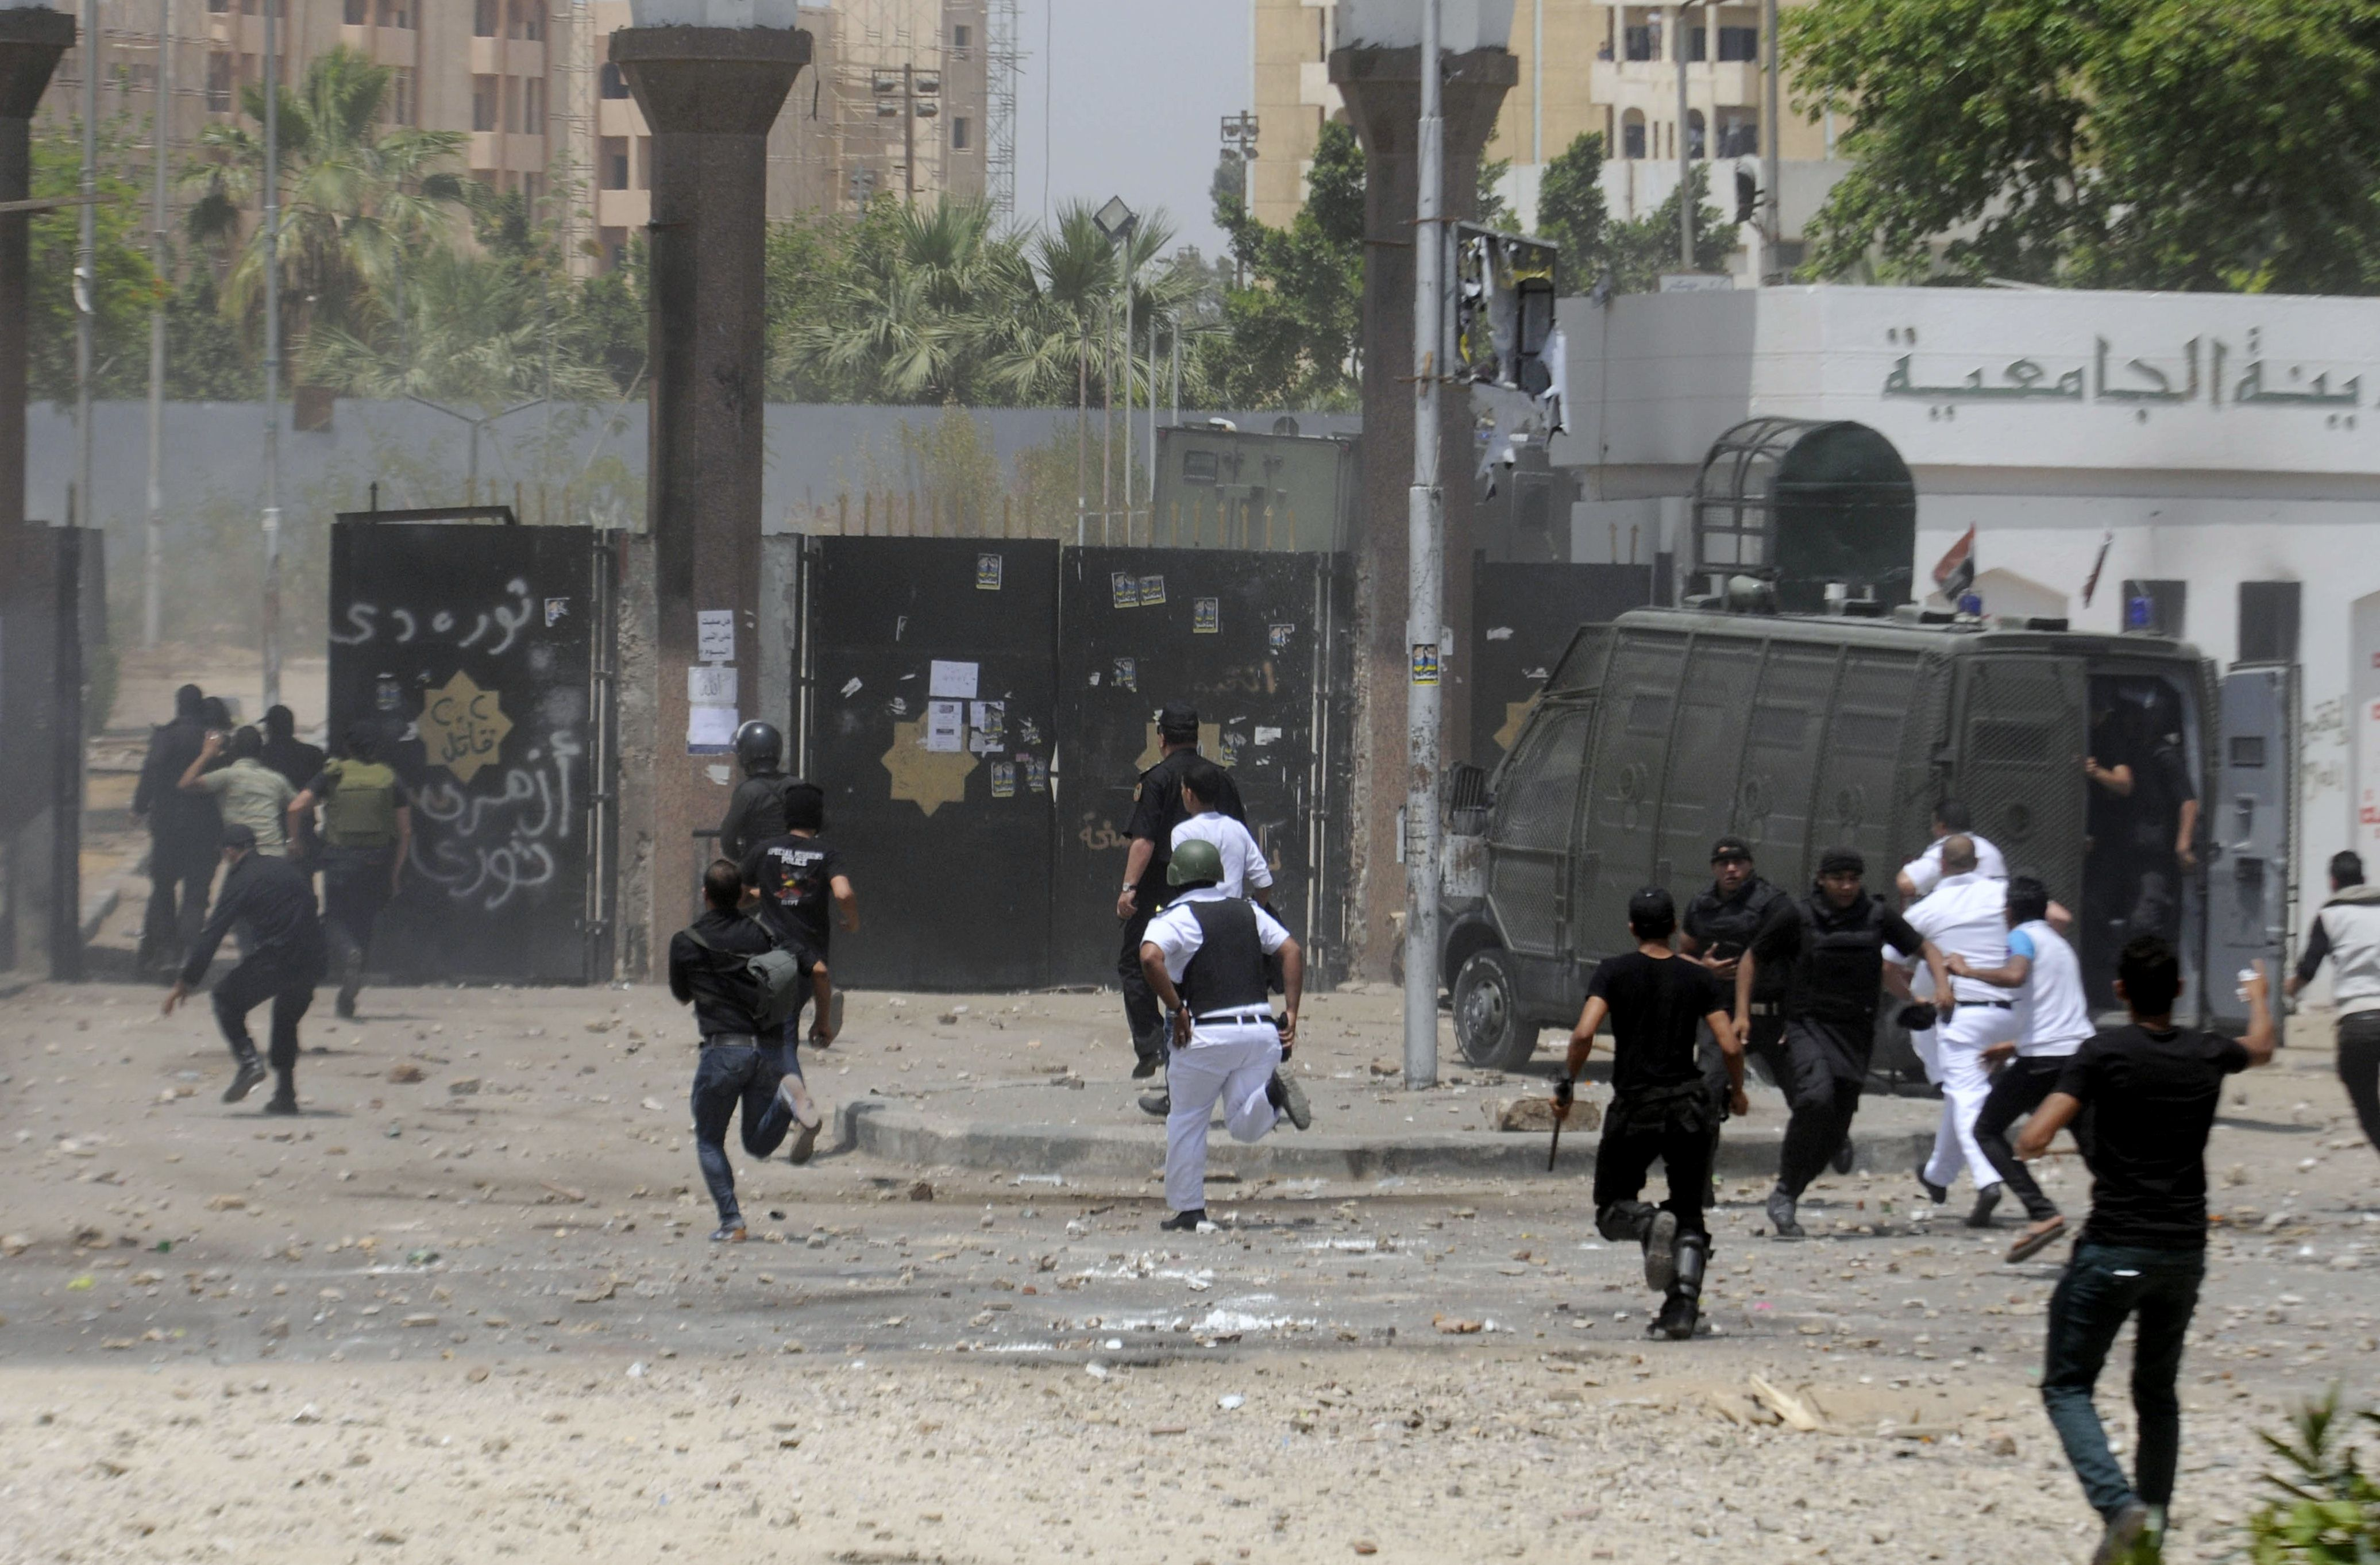 Egyptian policemen run towards the entrance of the al-Azhar university campus in Cairo on May 16, 2014 during clashes with students. Students supporters of deposed Islamist leader Mohammed Morsi regularly stage protests calling for his release at universities, in particular at Cairo's Al-Azhar university, a prestigious seat of Sunni Islamic learning. (AFP PHOTO / TAREK WAJEH)